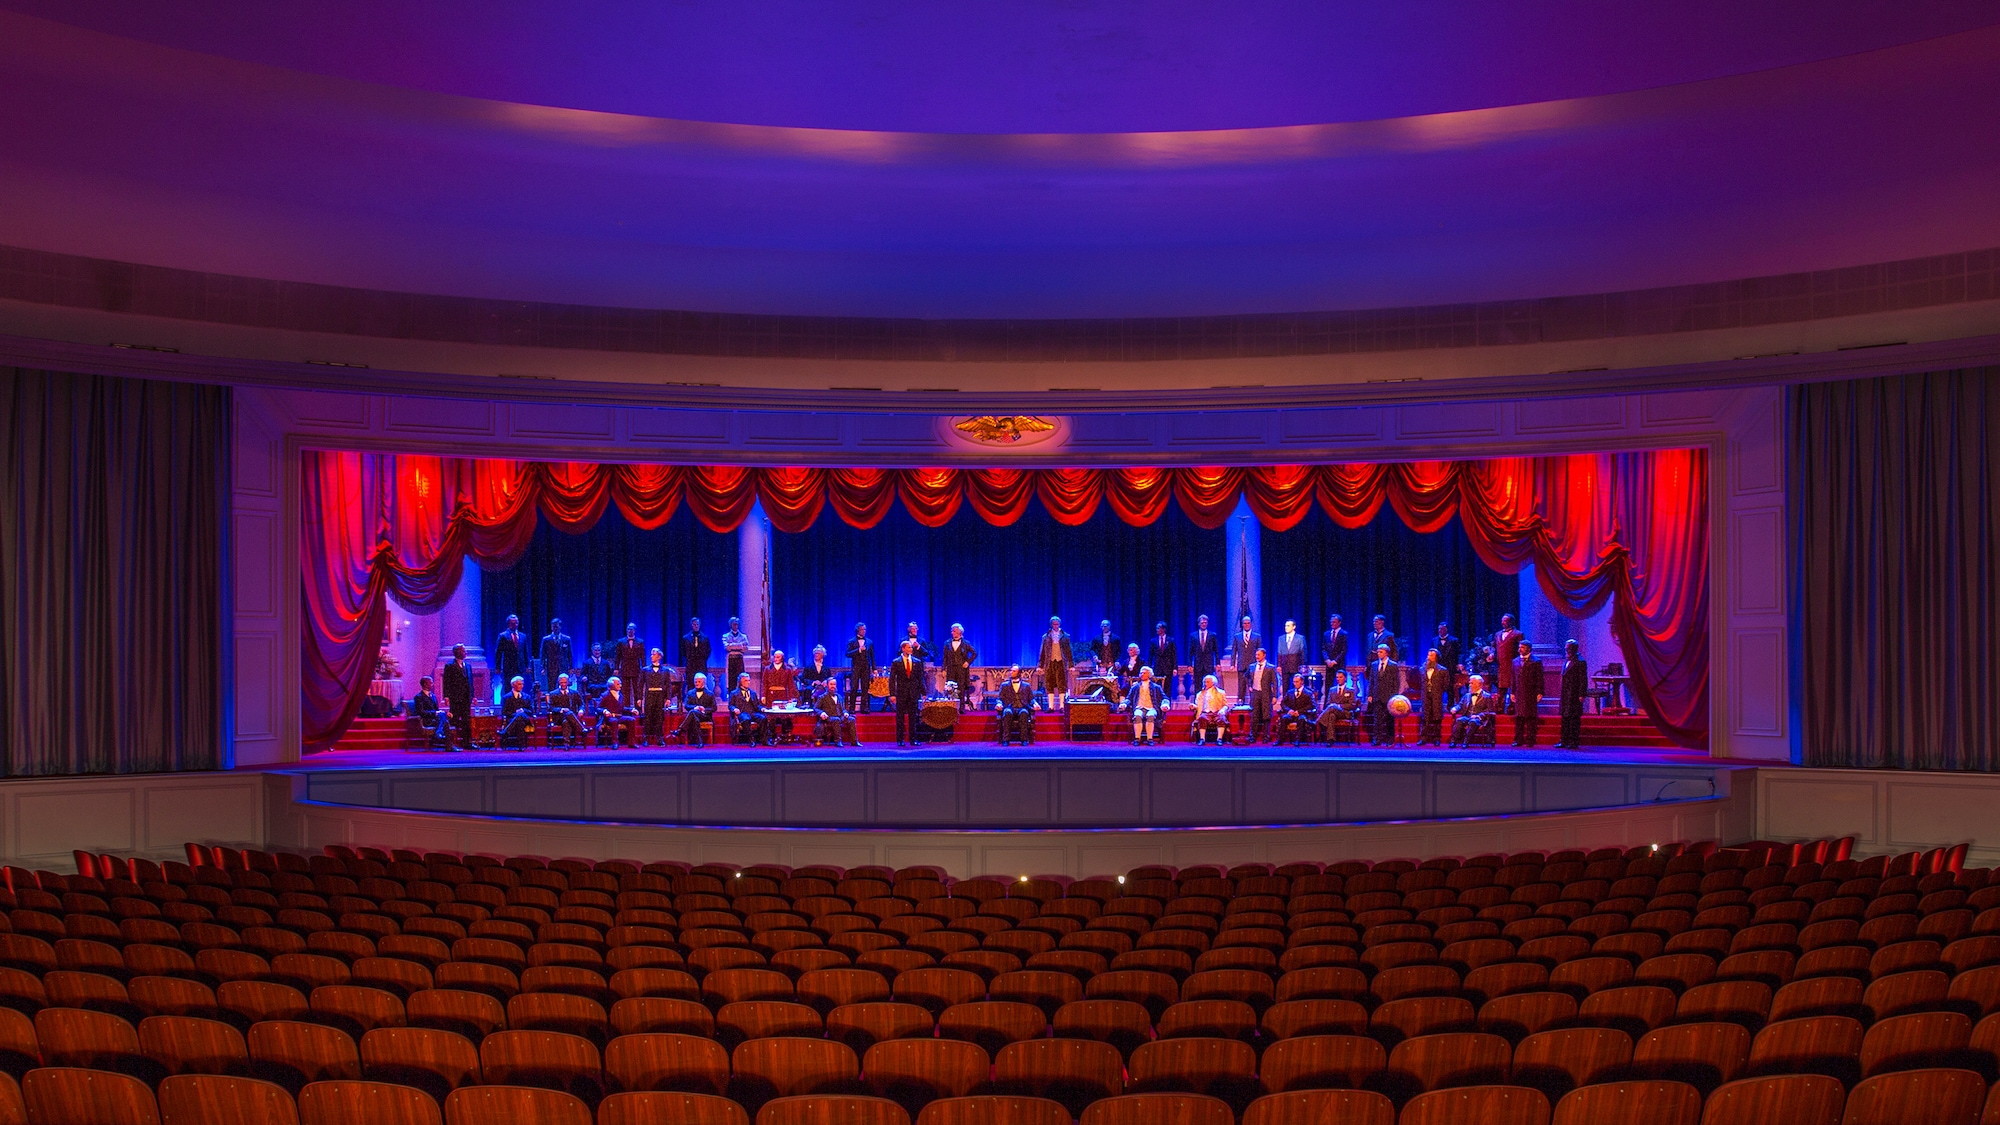 Image of The Hall of Presidents interior auditorium.